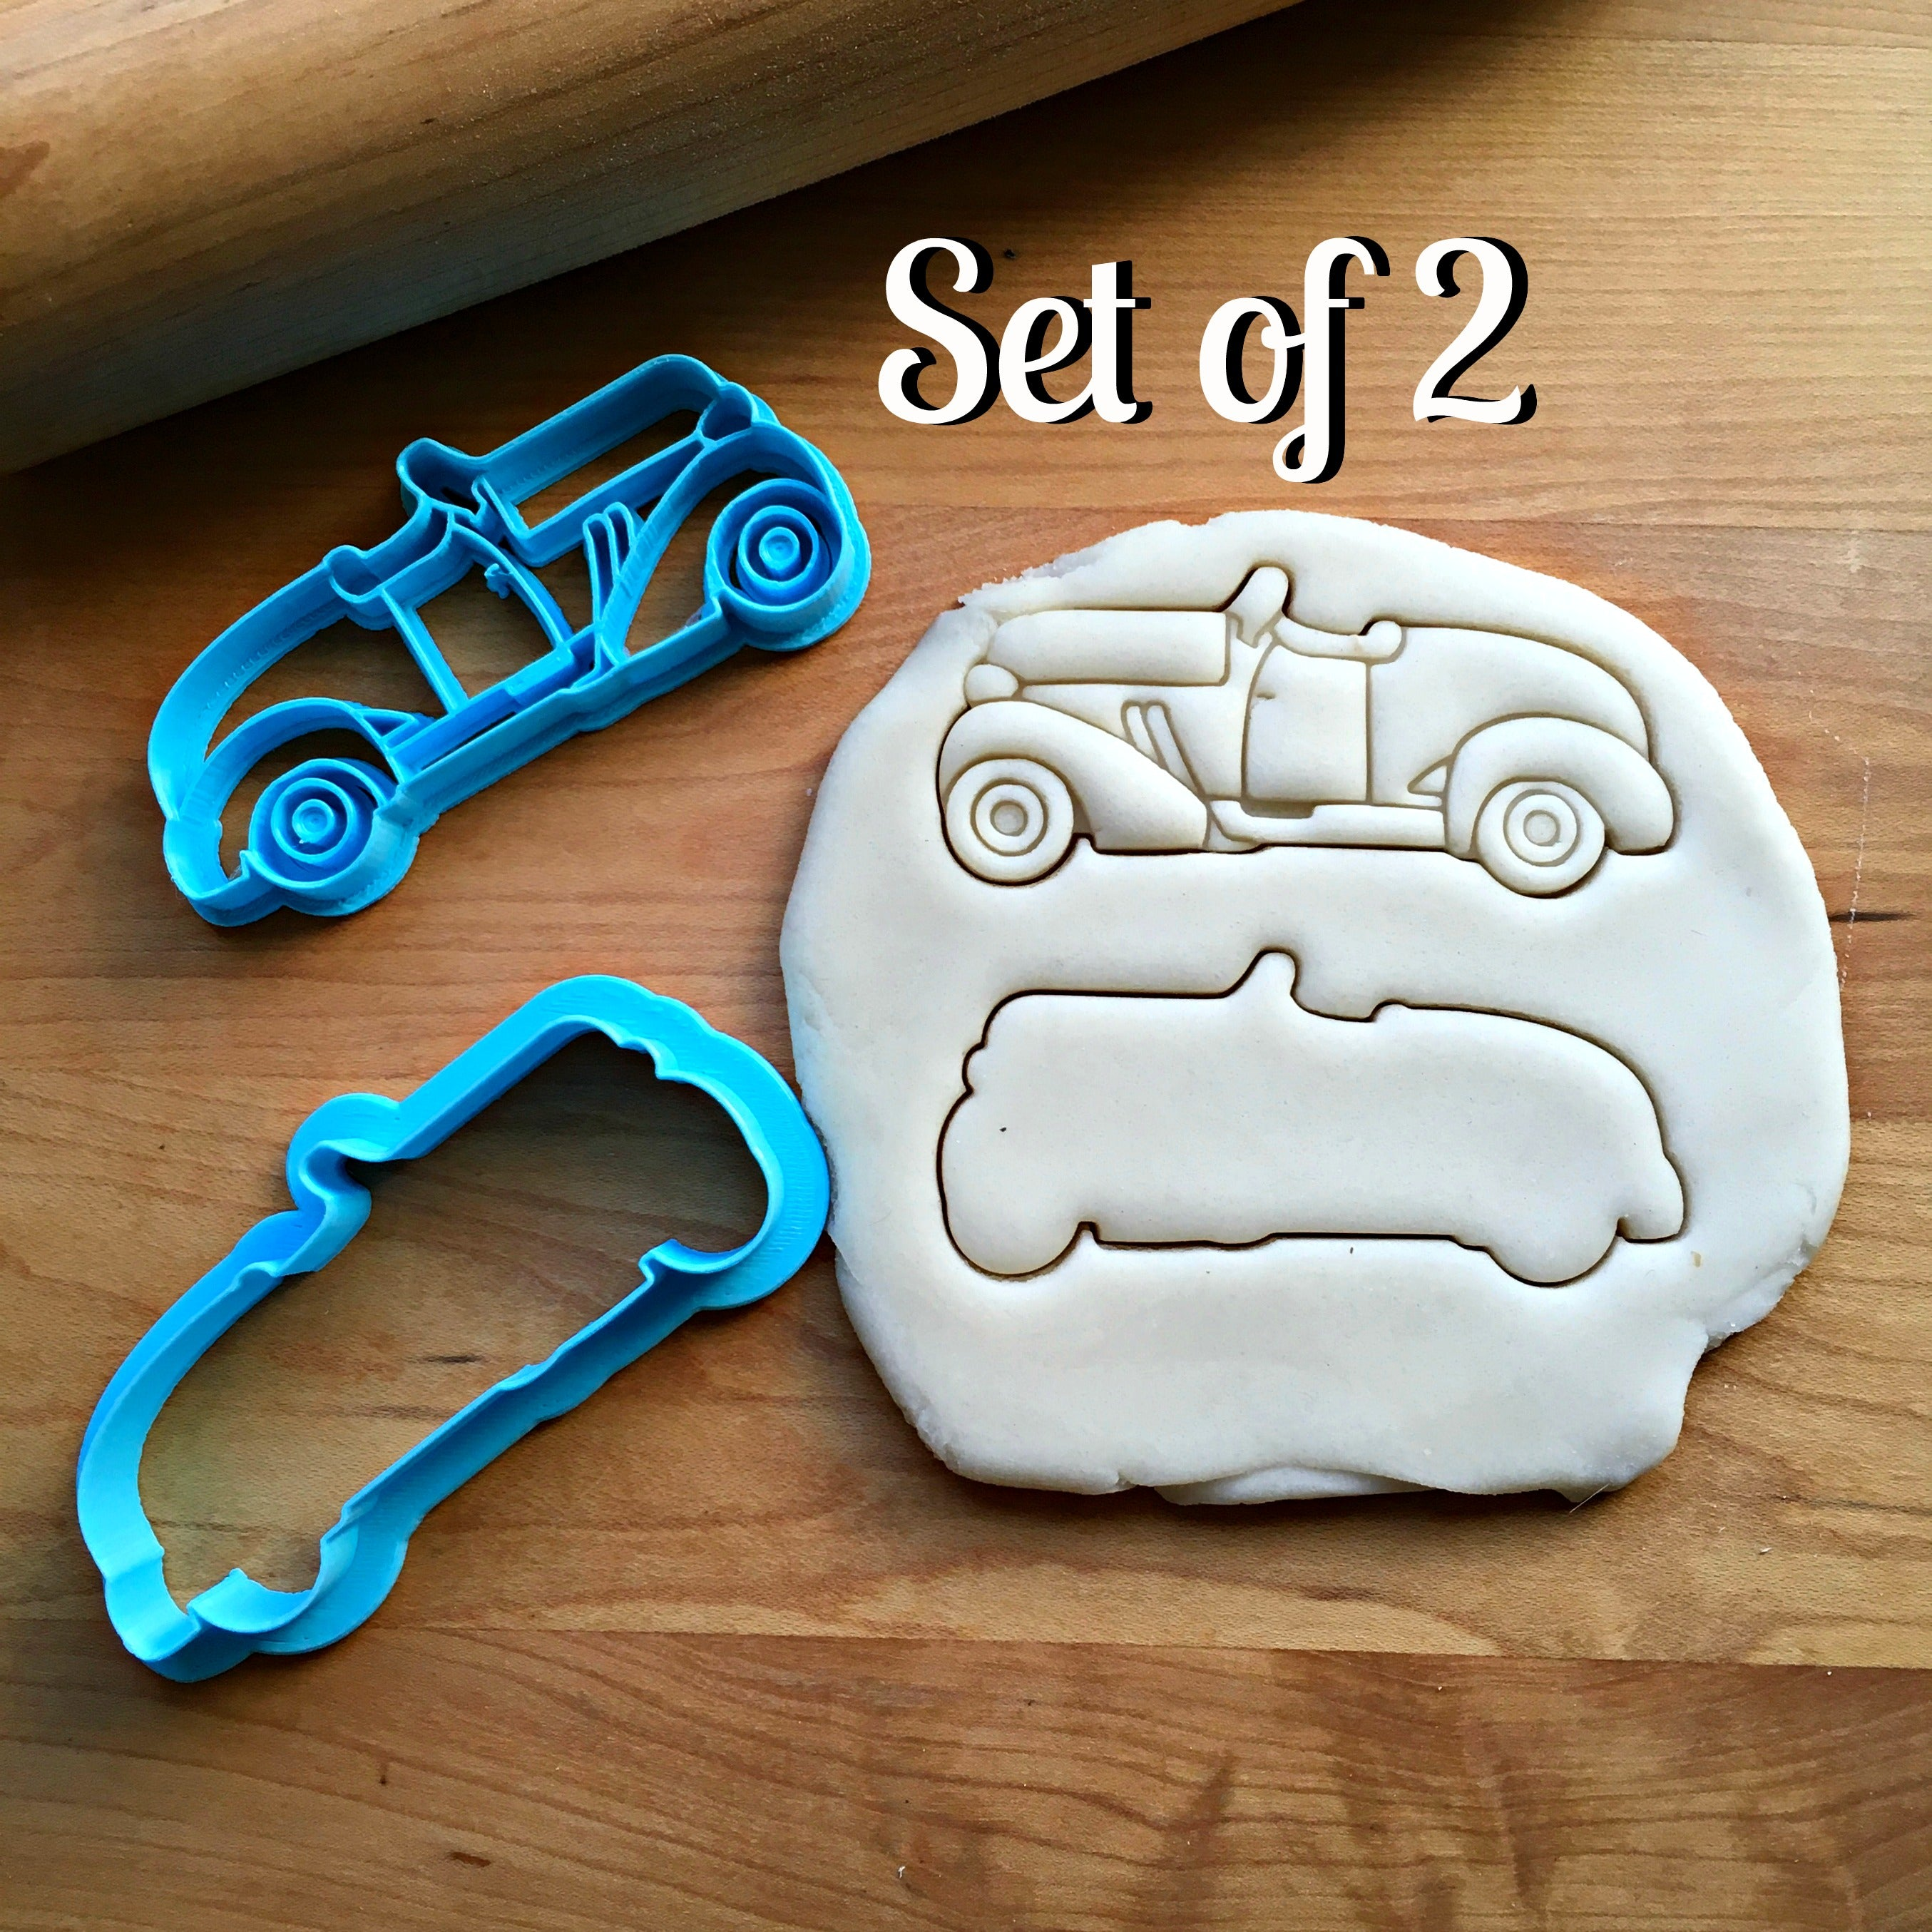 Set of 2 Roadster Cookie Cutters/Dishwasher Safe